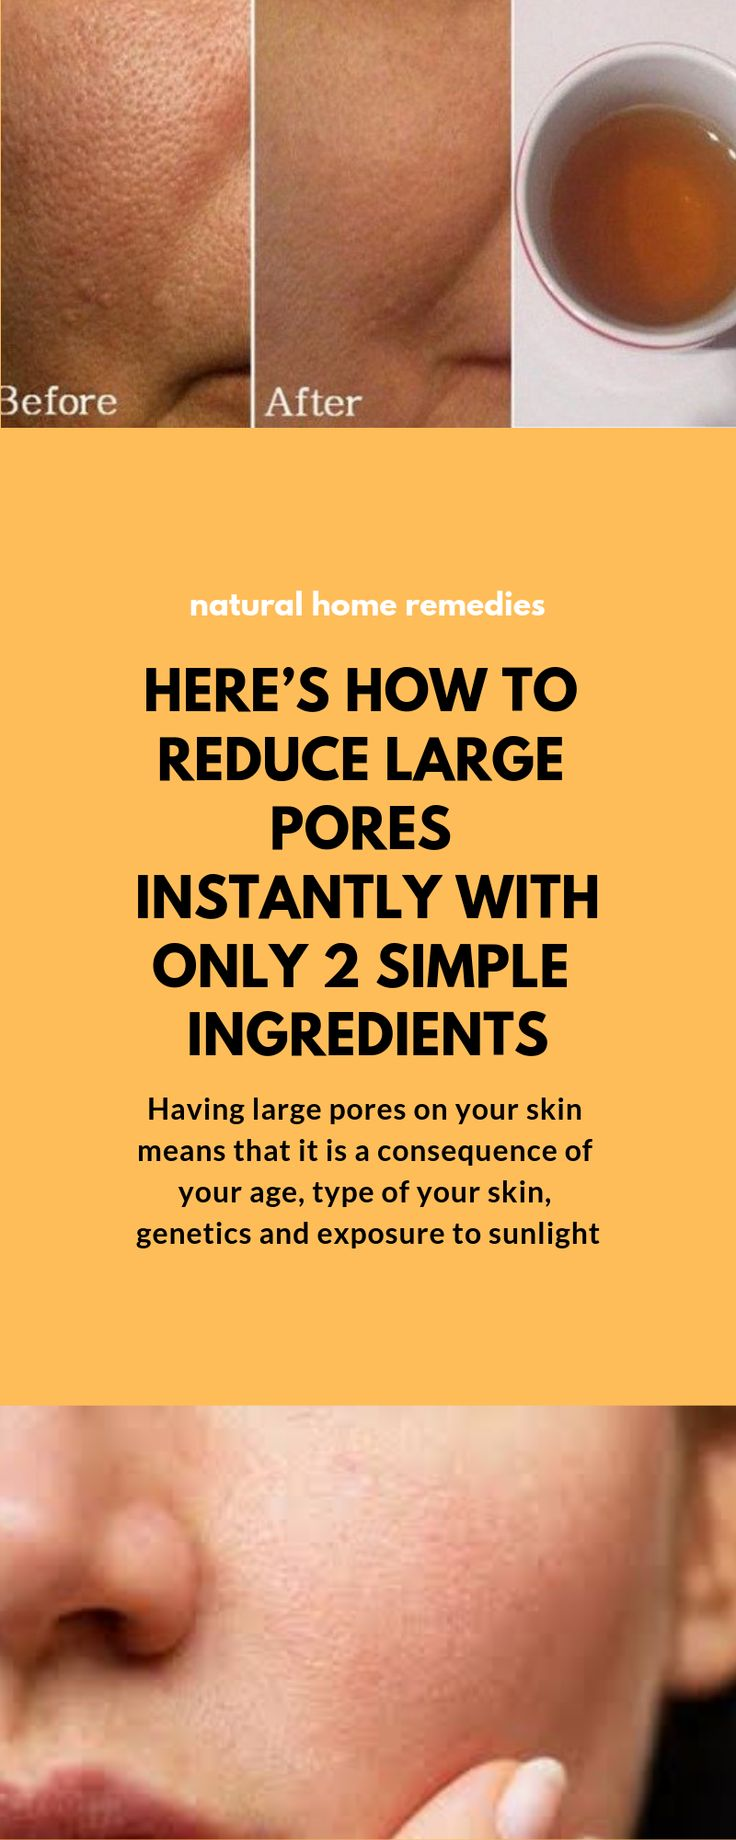 HERE'S HOW TO REDUCE LARGE PORES INSTANTLY WITH ONLY 2 SIMPLE INGREDIENTS